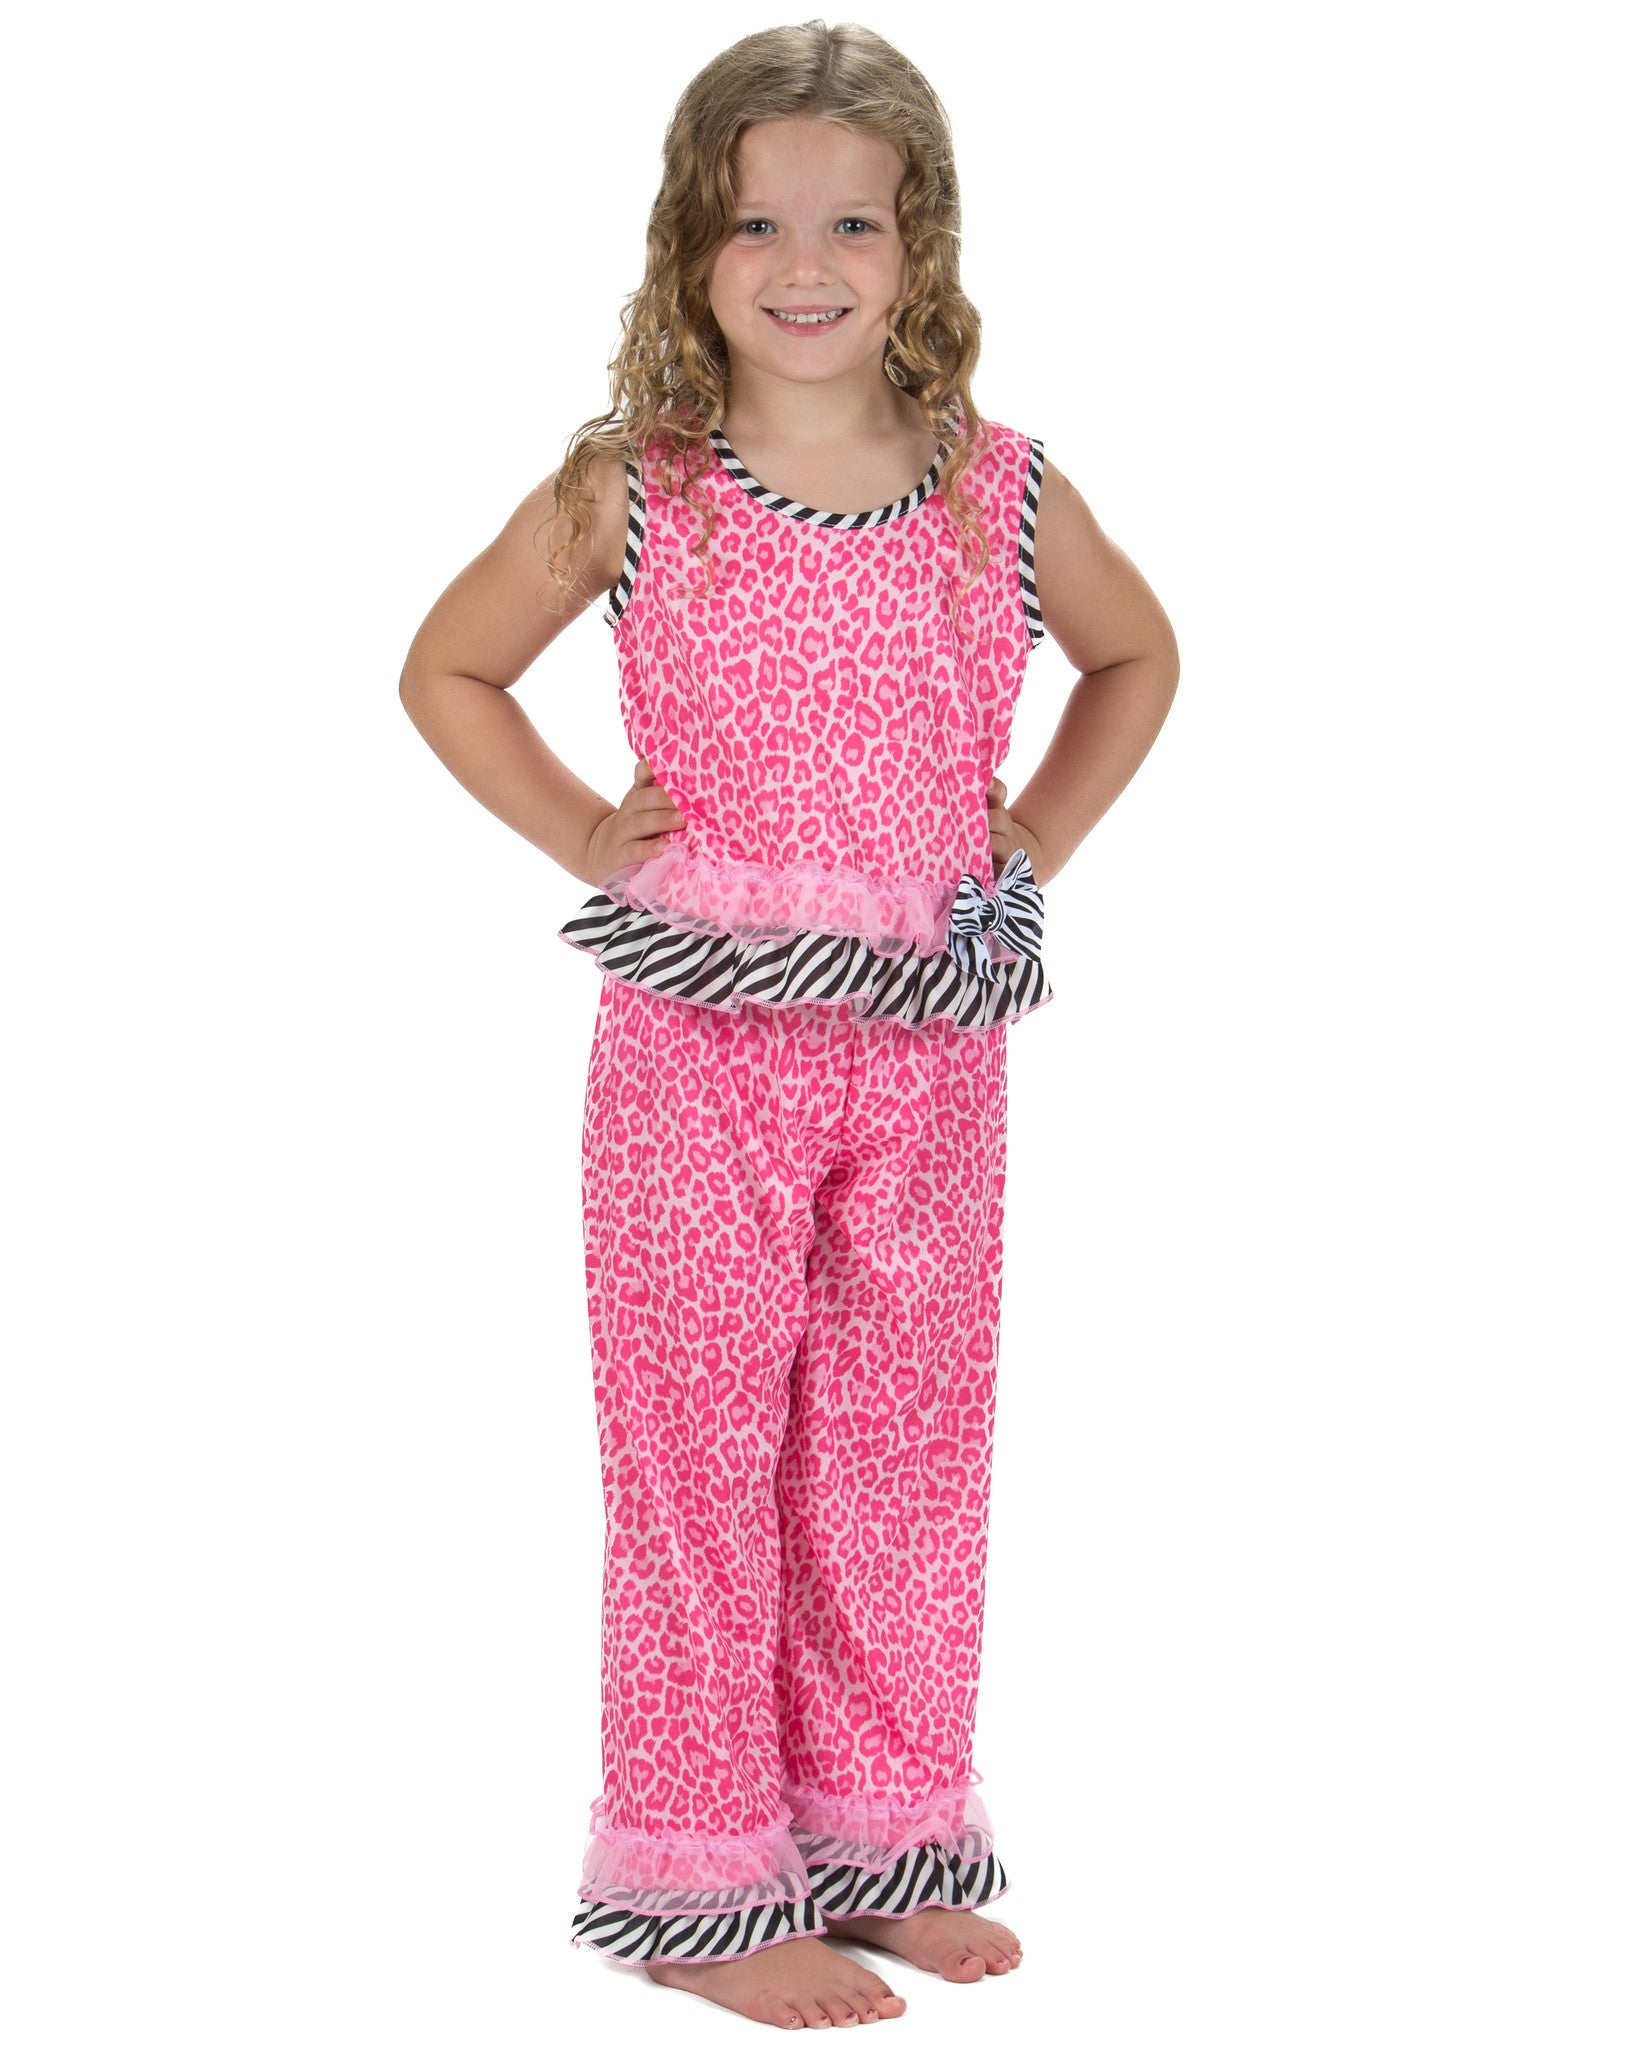 Laura Dare In The Pink Sleeveless Pajamas